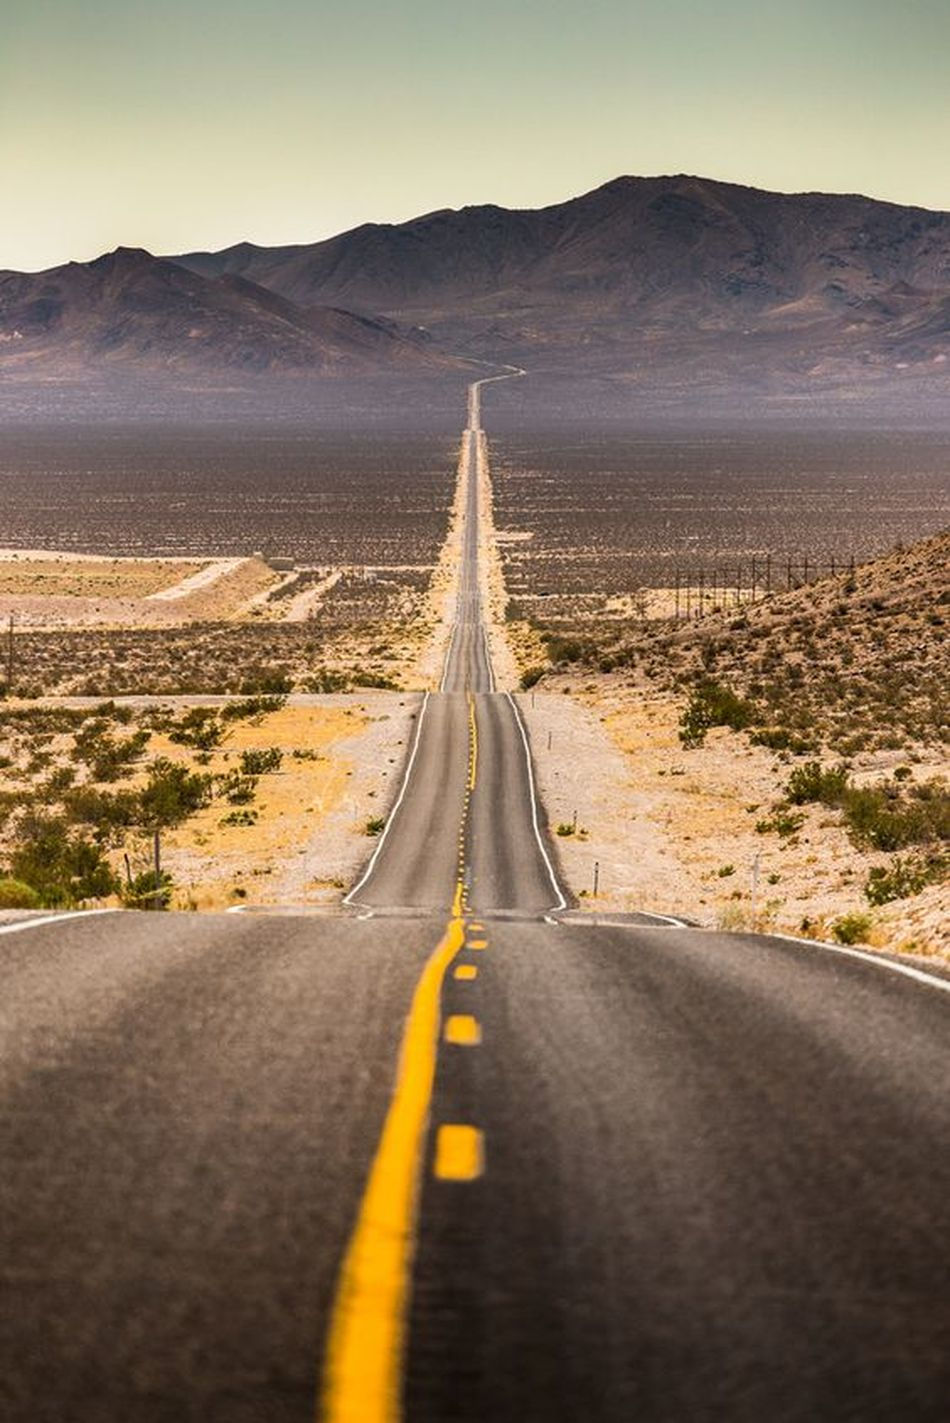 death-valley-image-2-pin_2.jpg